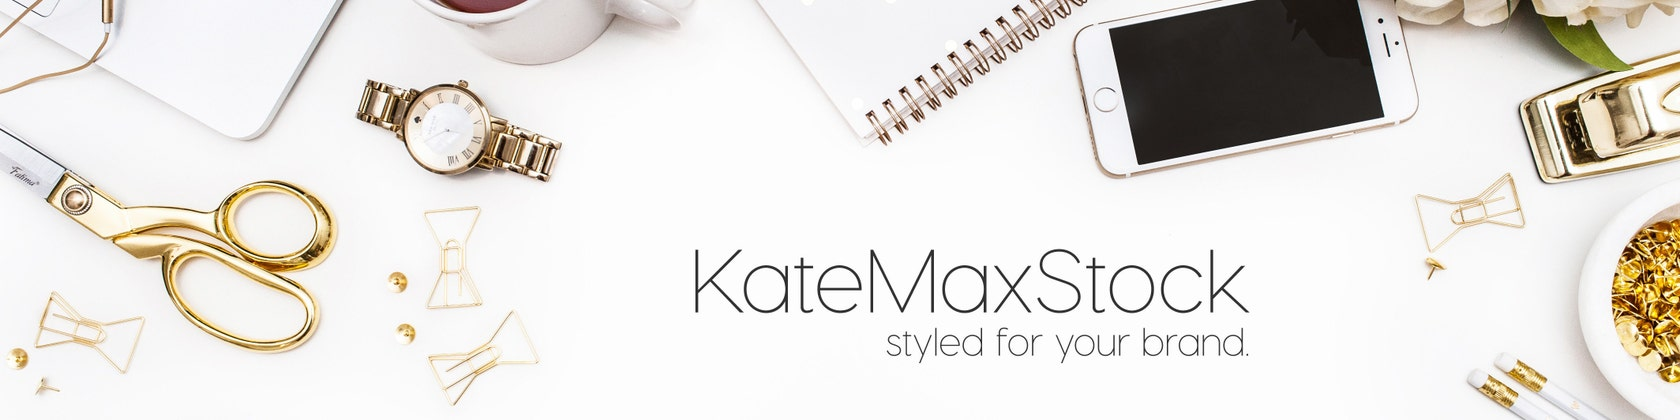 7086f08fb82a Styled Stock Photos for Growing Businesses di KateMaxStock su Etsy